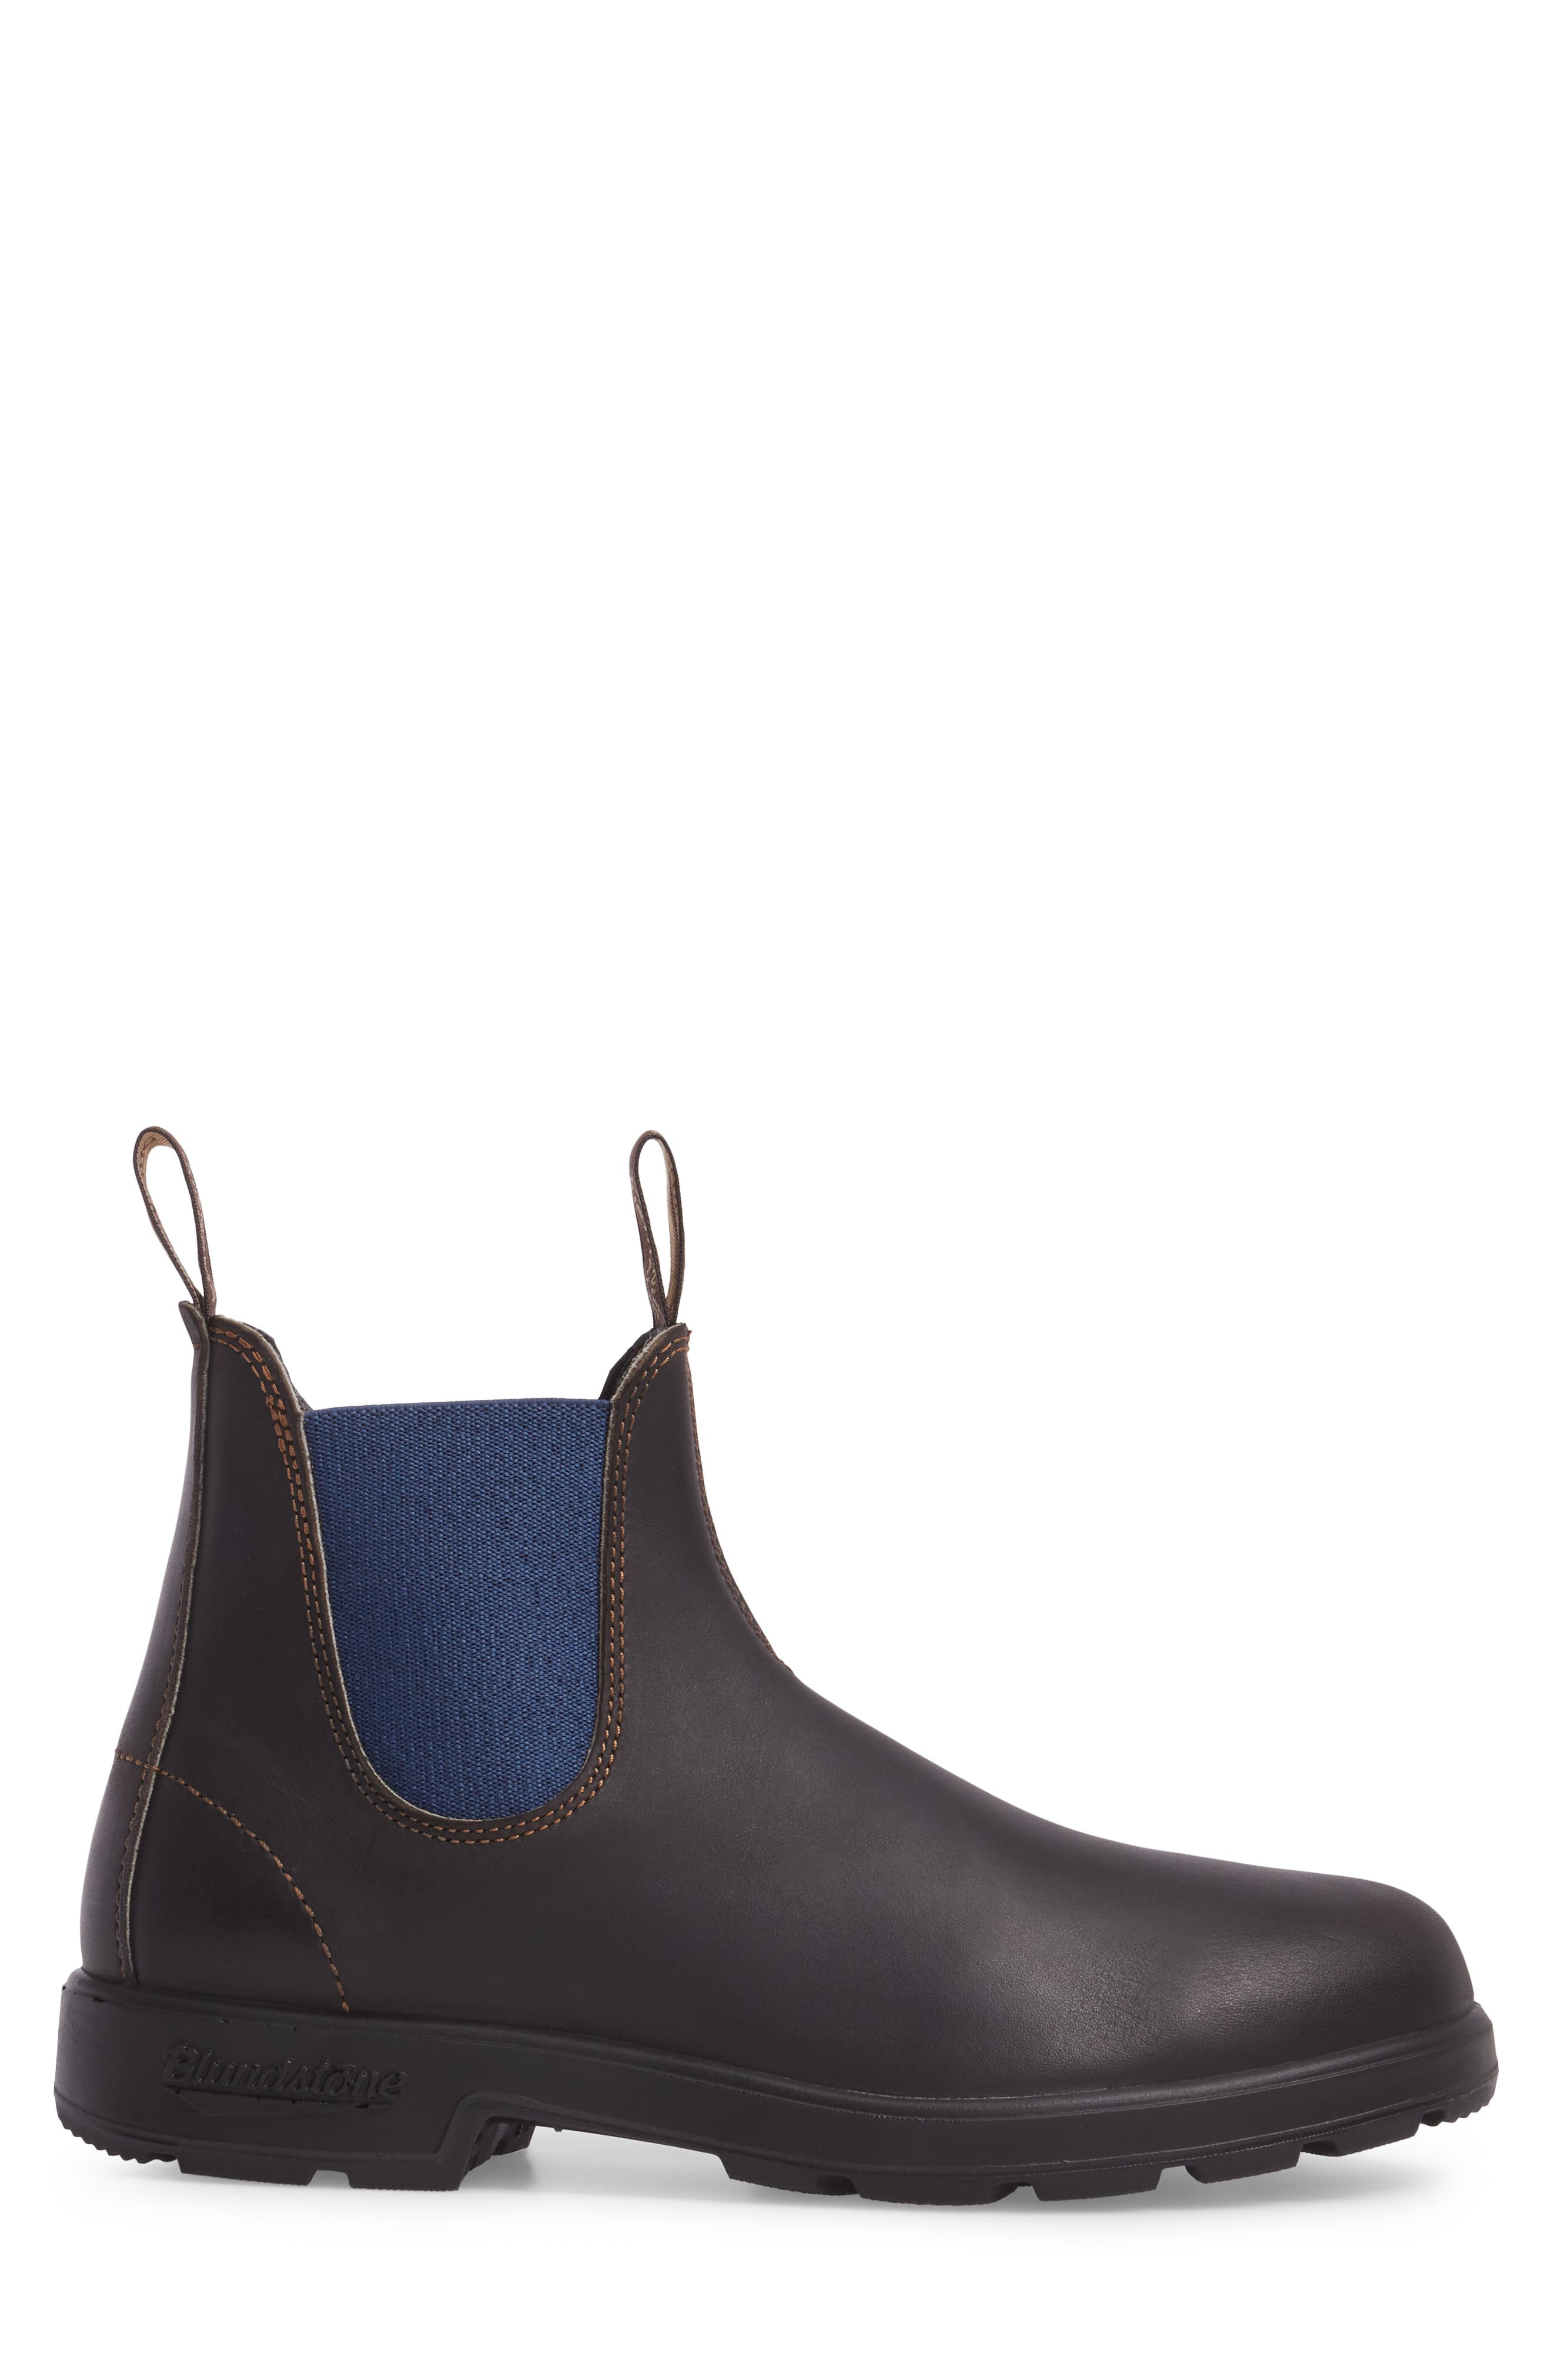 Alternate Image 3  - Blundstone Footwear Chelsea Boot (Men)